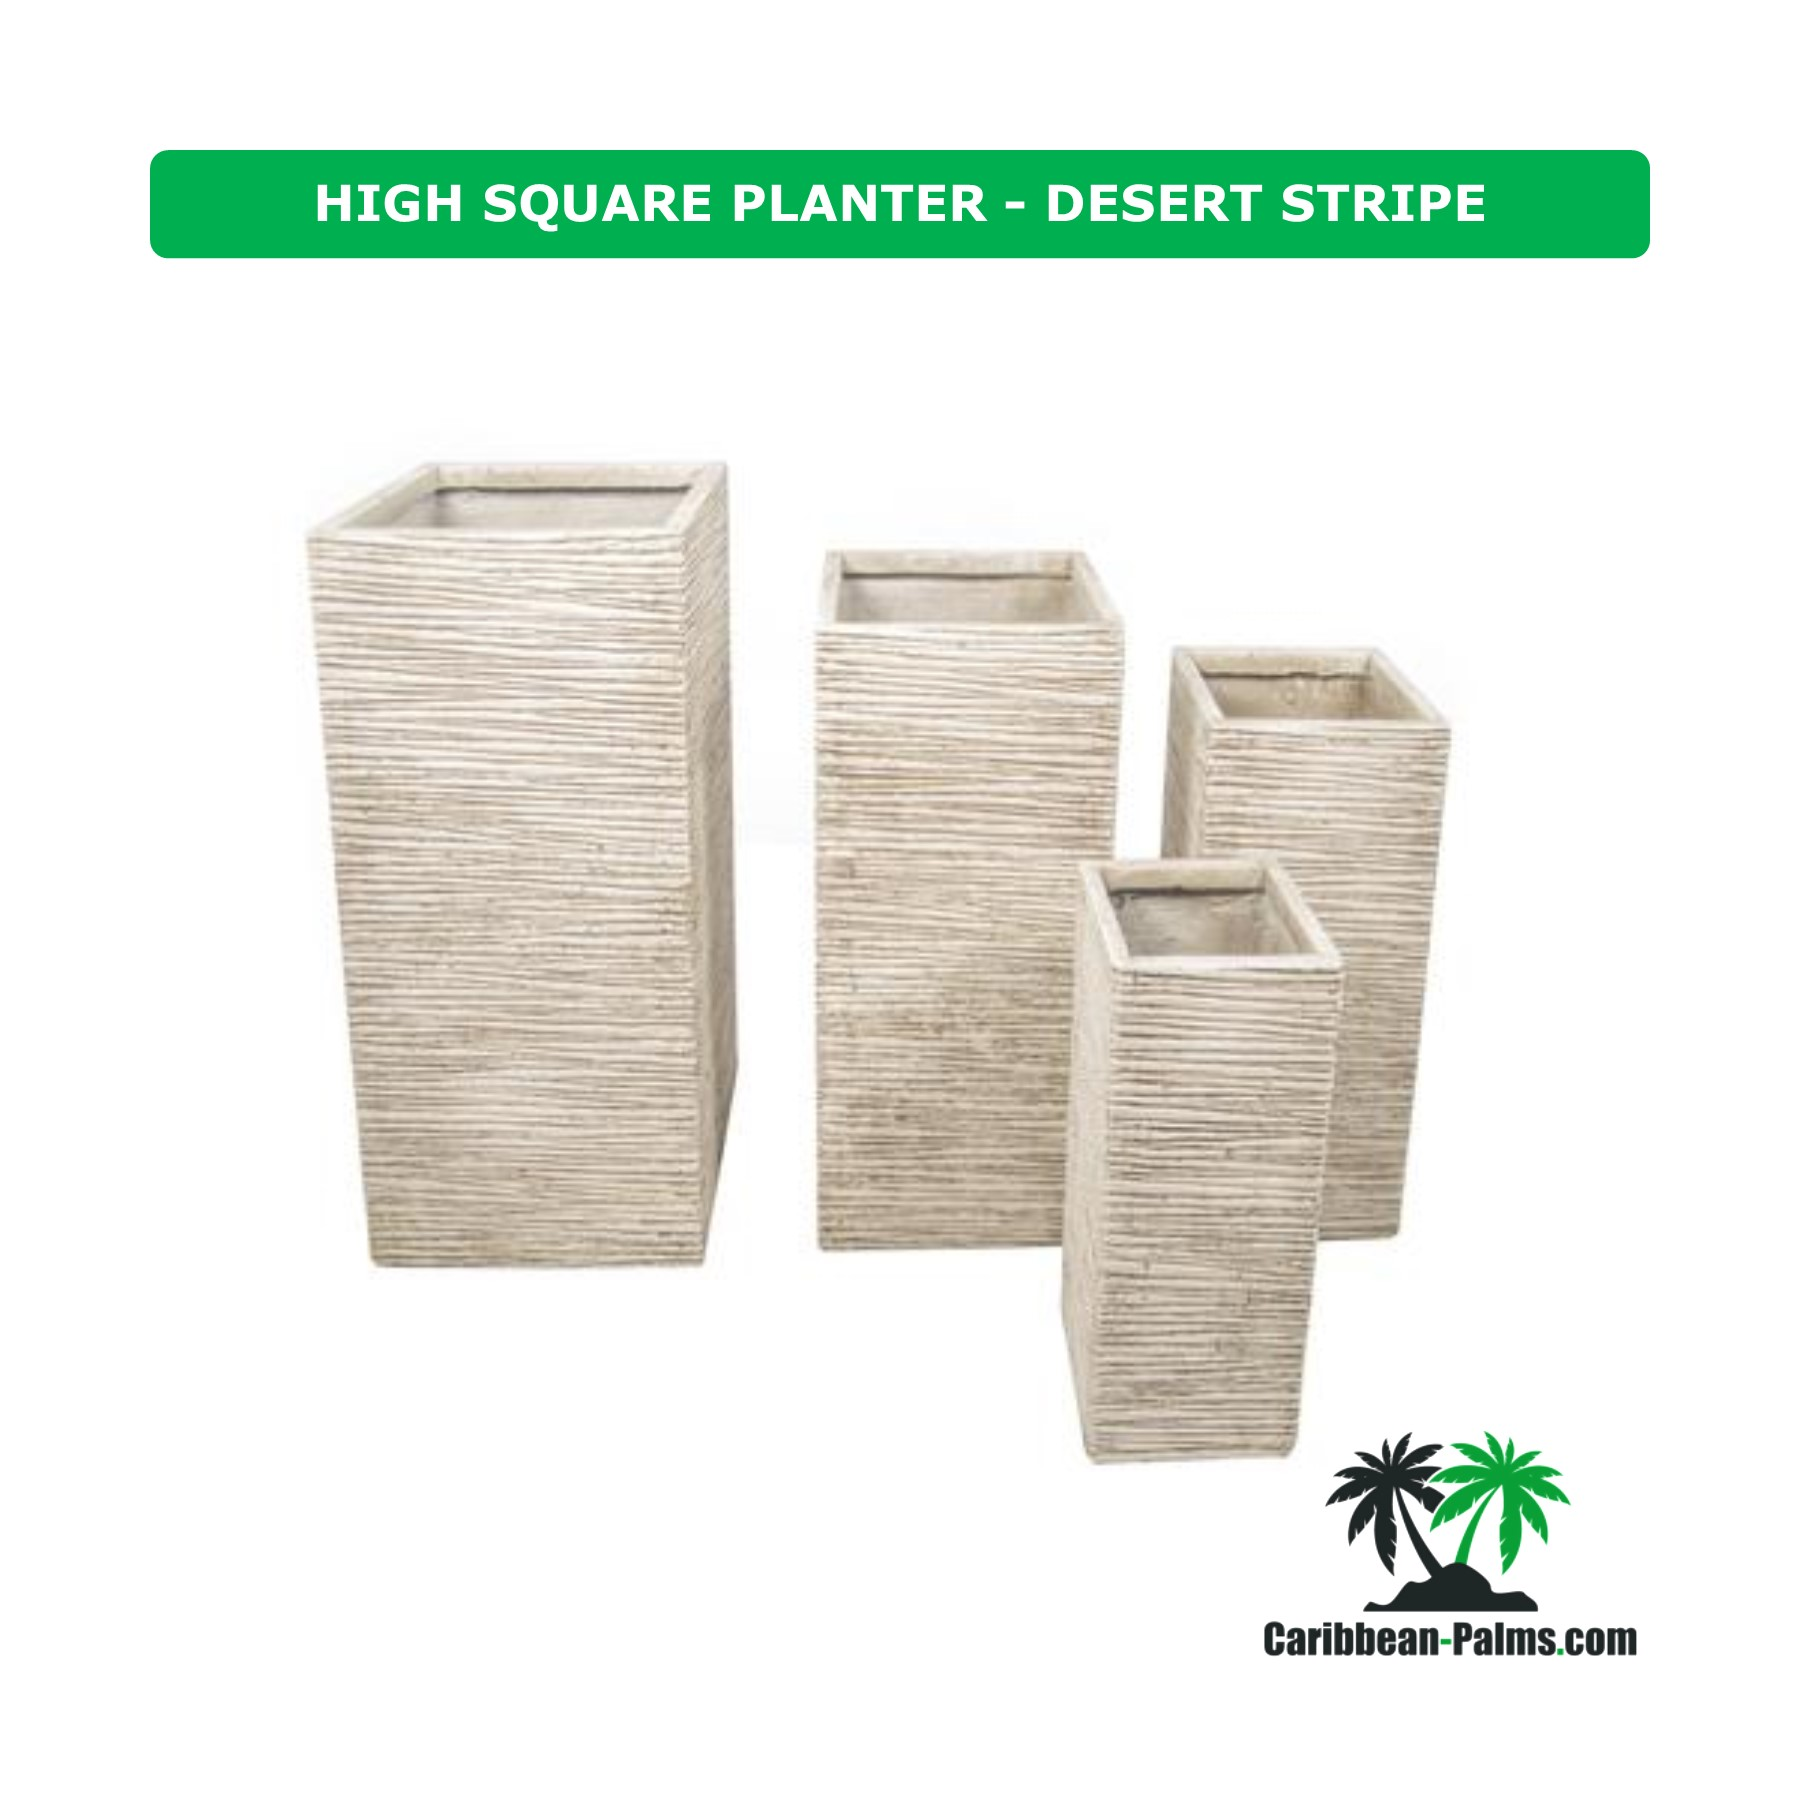 HIGH SQUARE PLANTER DESERT STRIPE